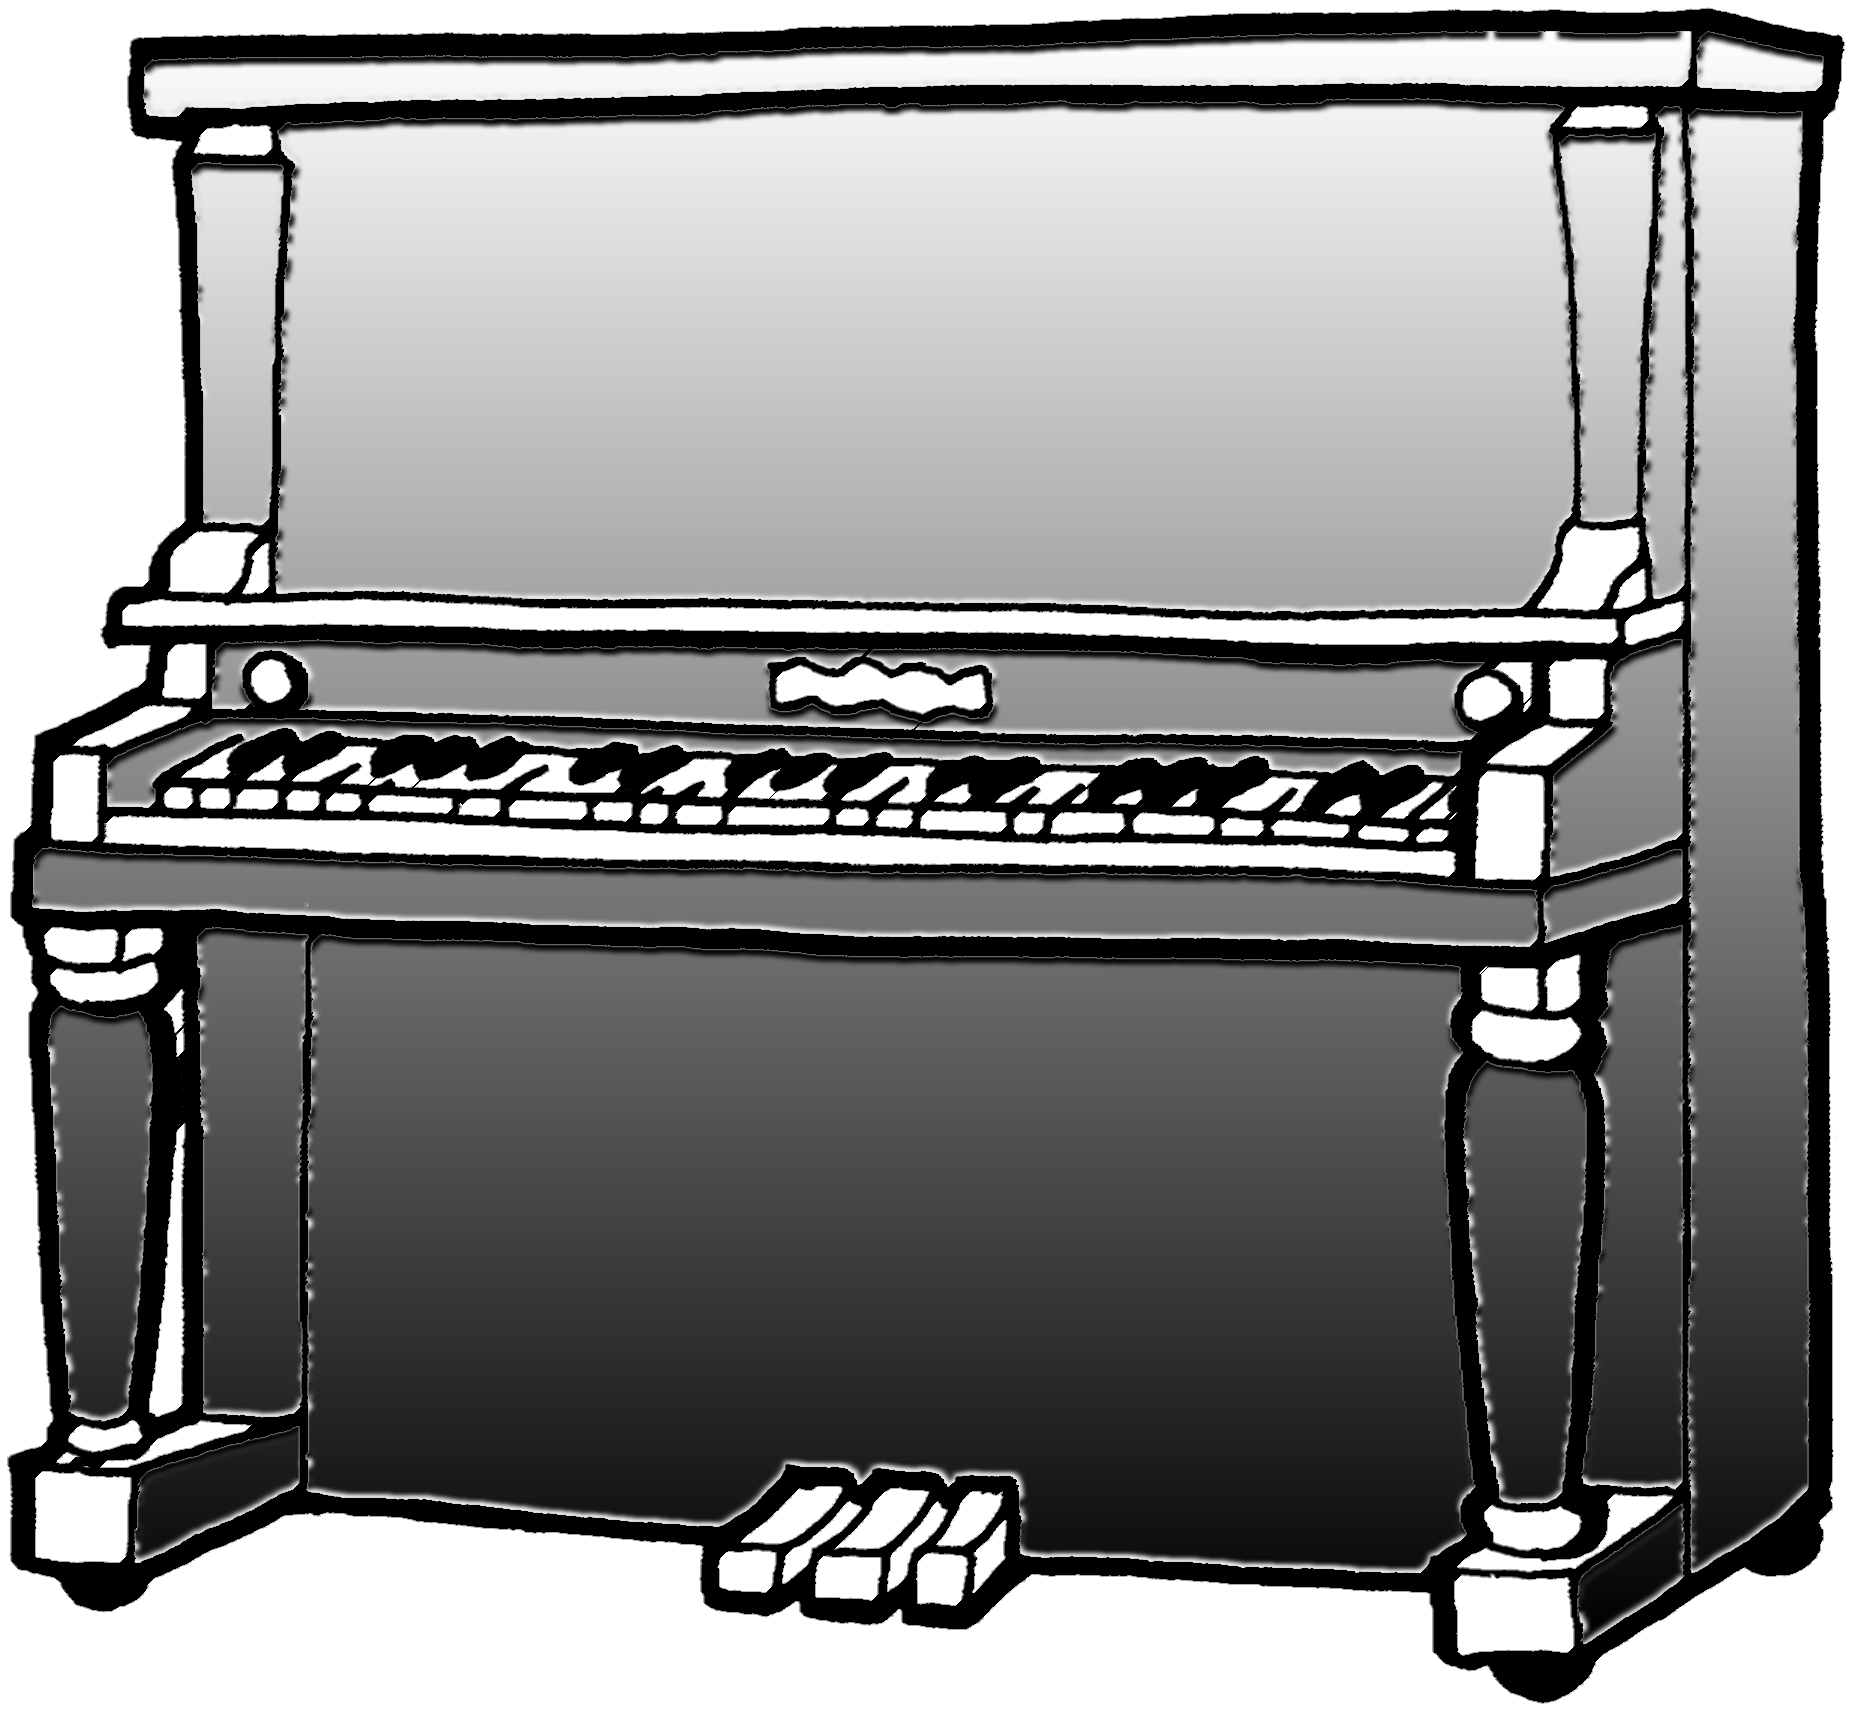 drawings of pianos piano clipart etc of drawings pianos